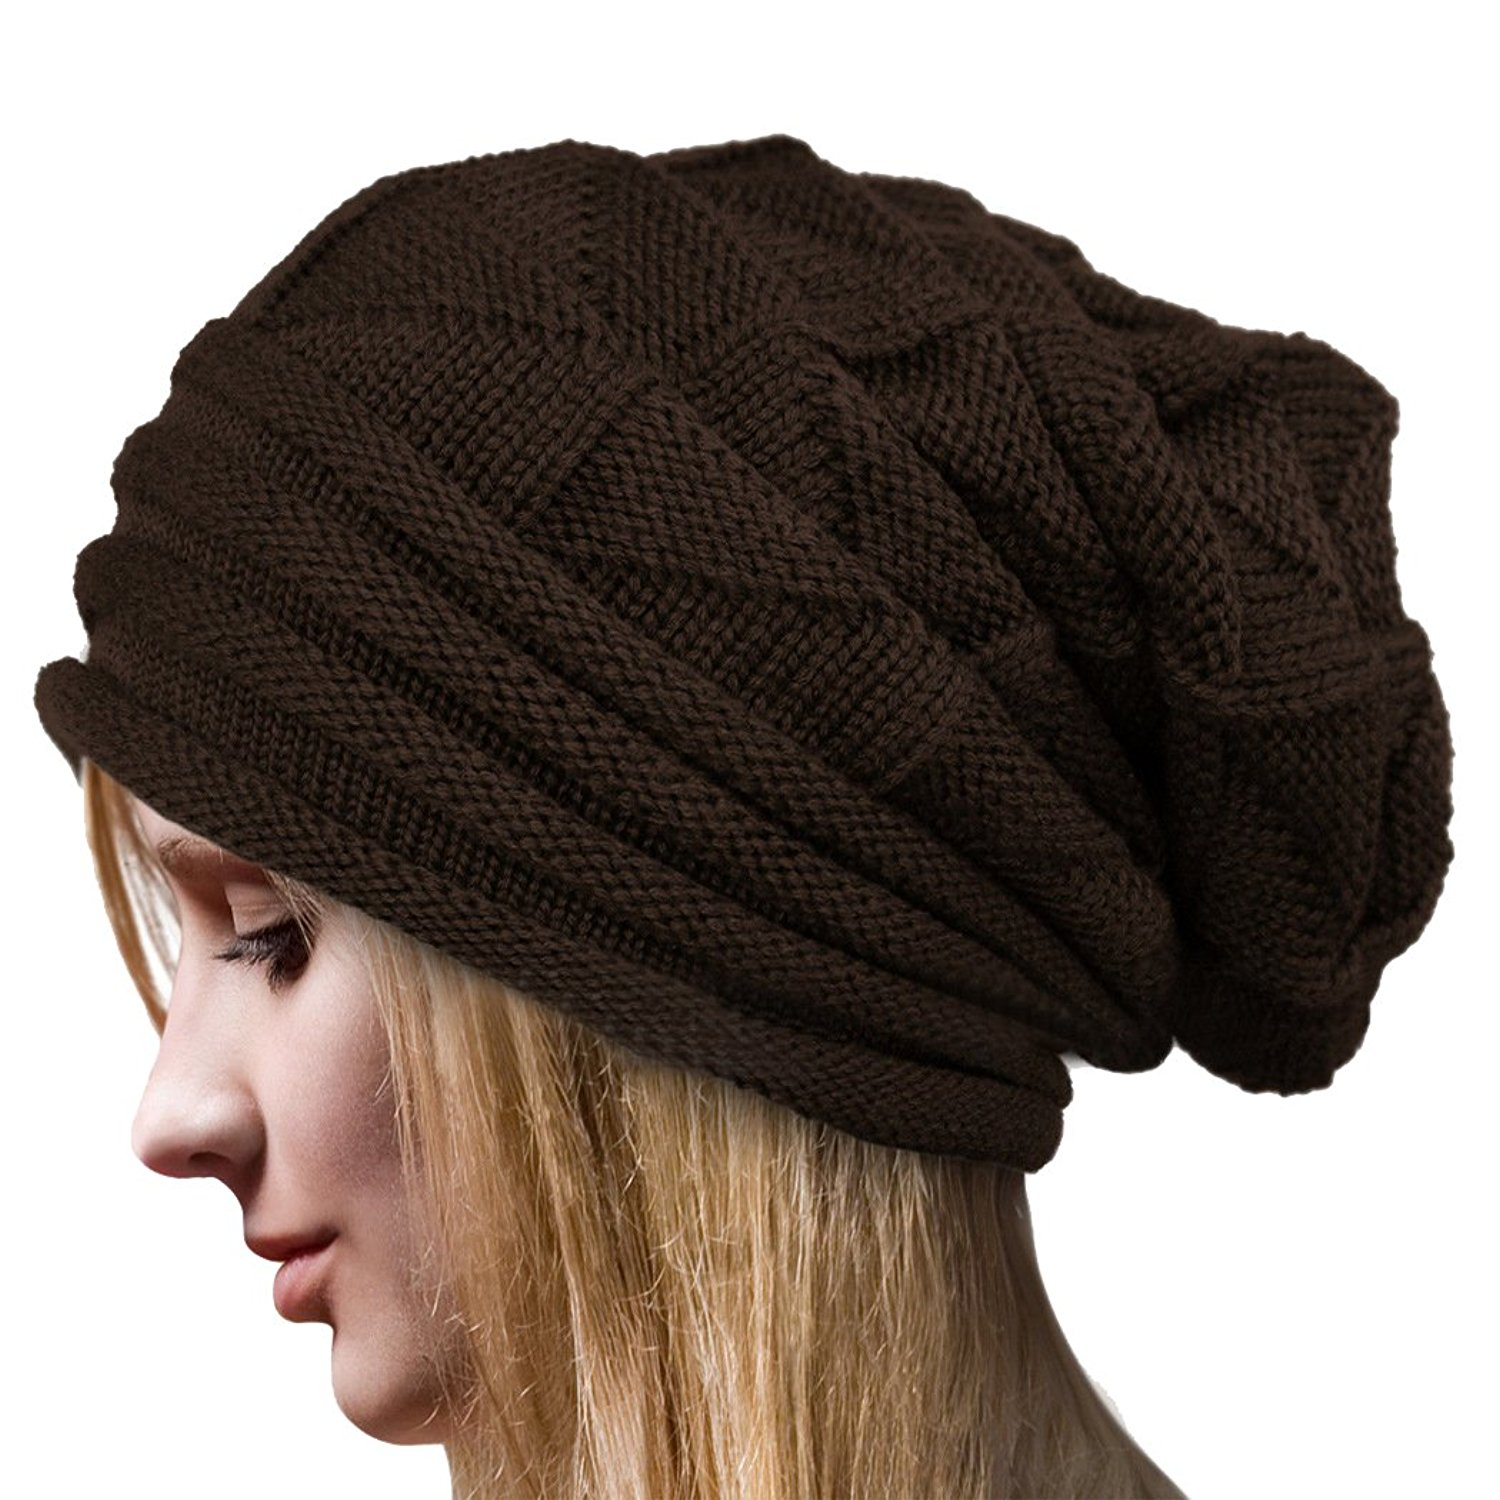 ffb0f48f521 Get Quotations · Molly Women s Winter Beanie Knit Crochet Ski Hat Oversized  Cap Hat Warm Coffee